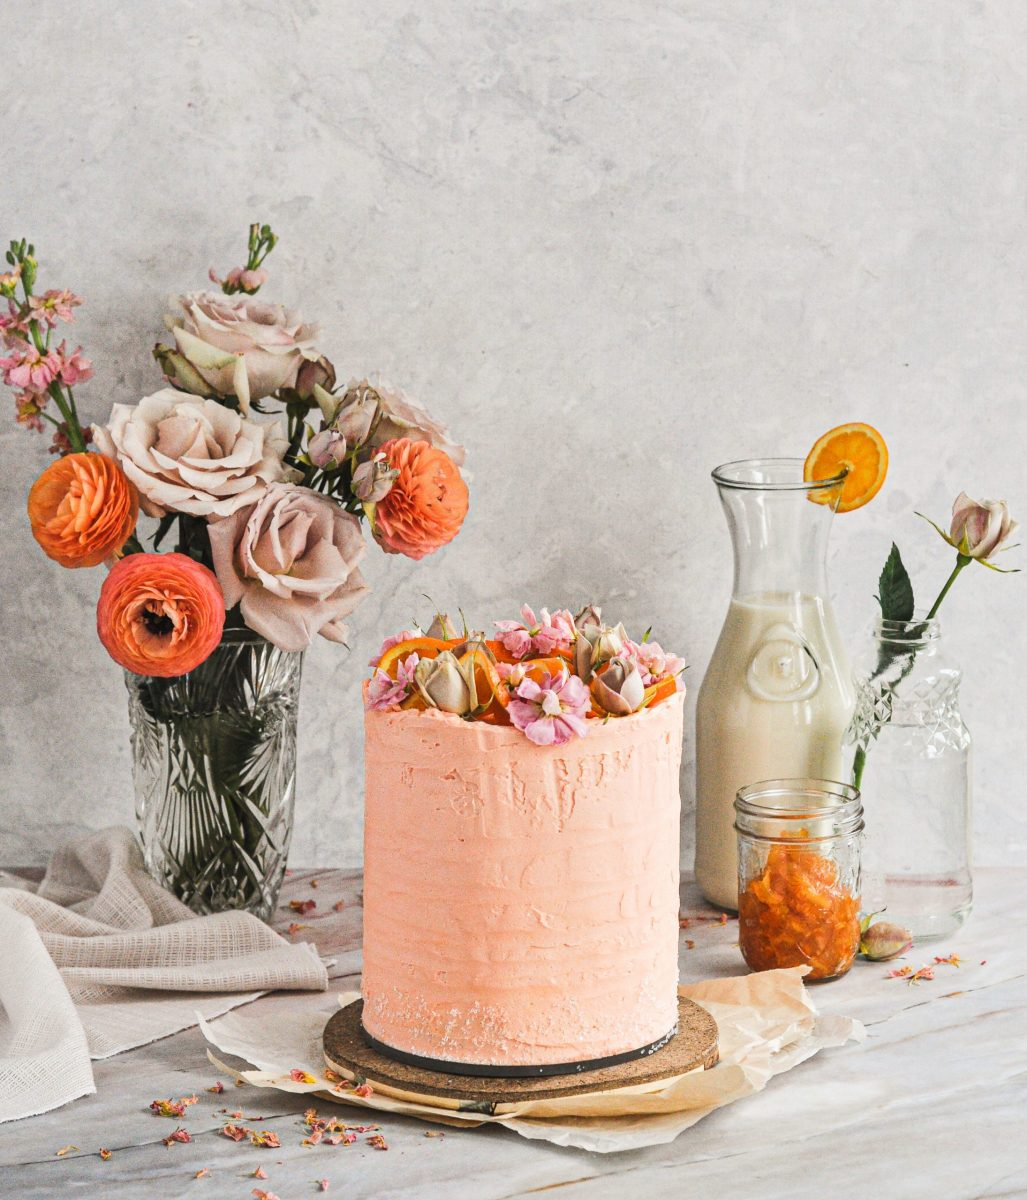 An orange cake topped with orange slices and fresh flowers sitting on a table with a flower vase and a milk craft.